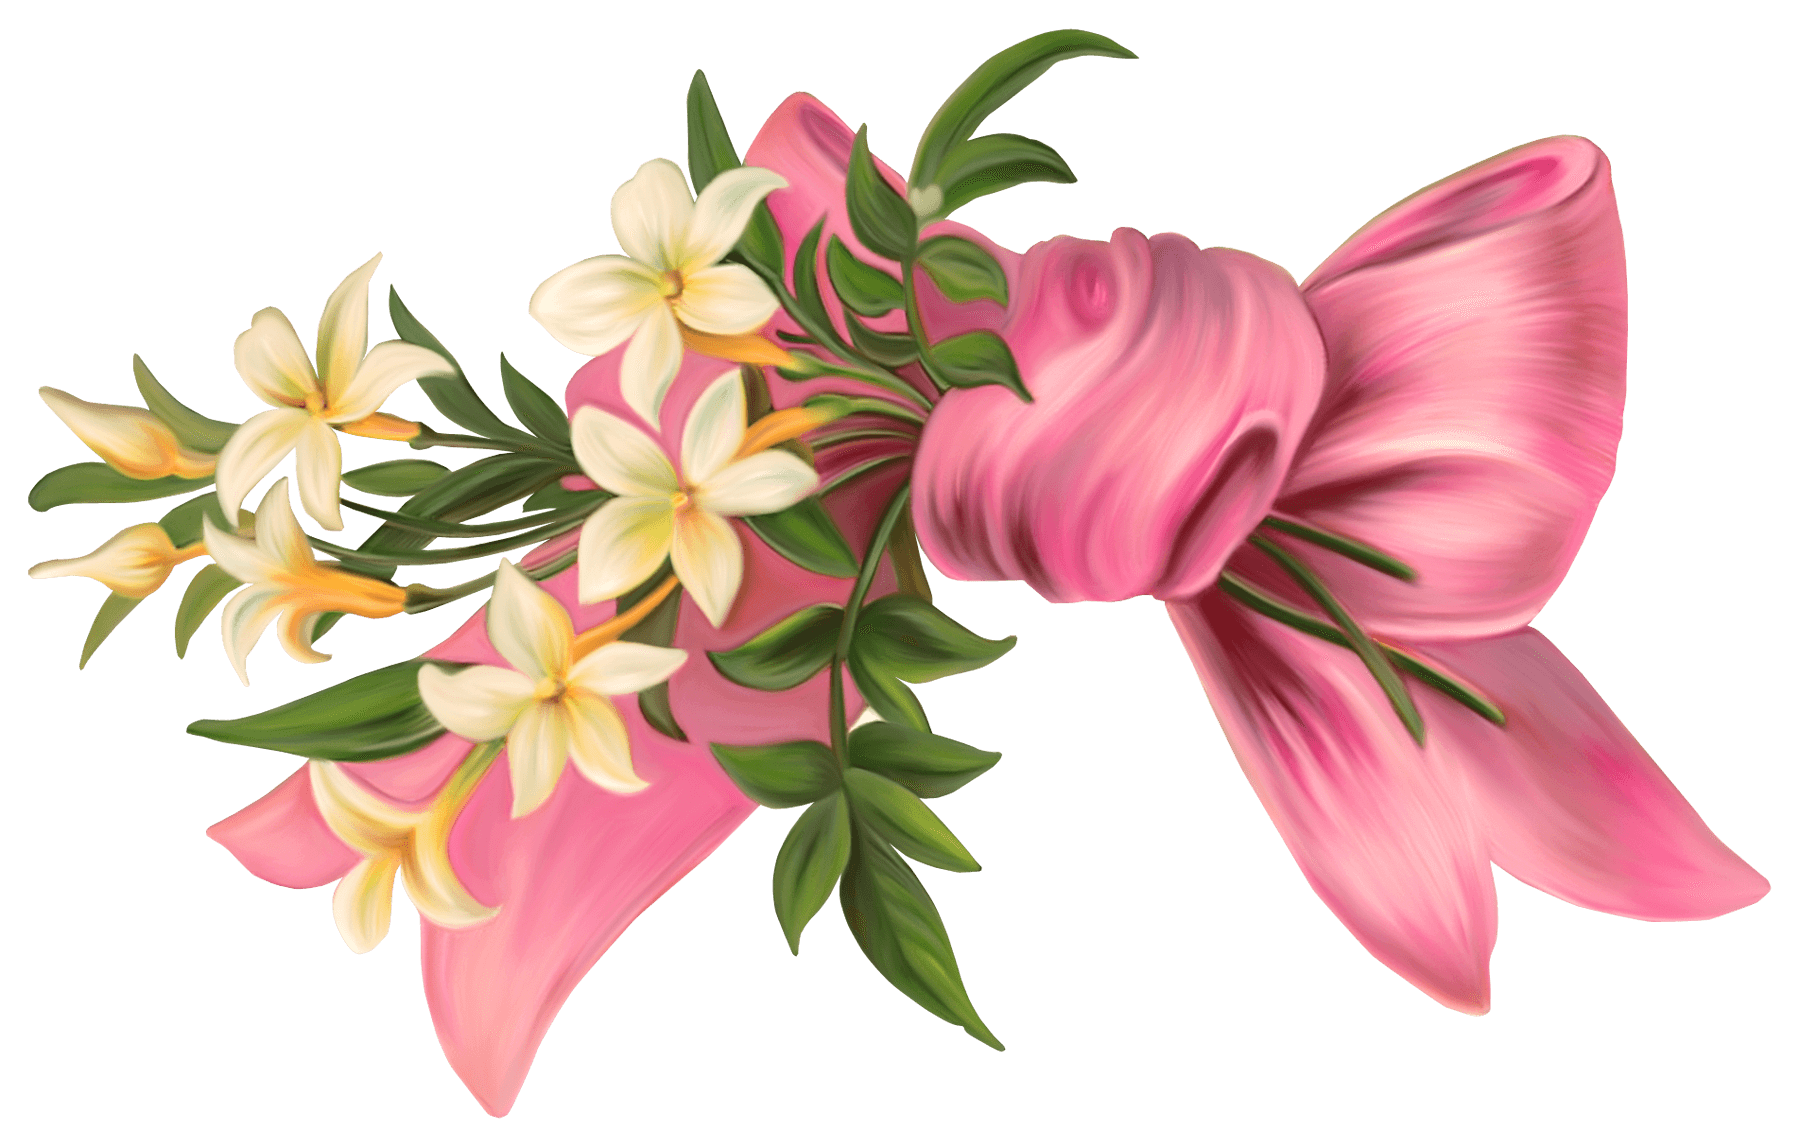 Floral bouquet png. Art nouveau flowers transparent